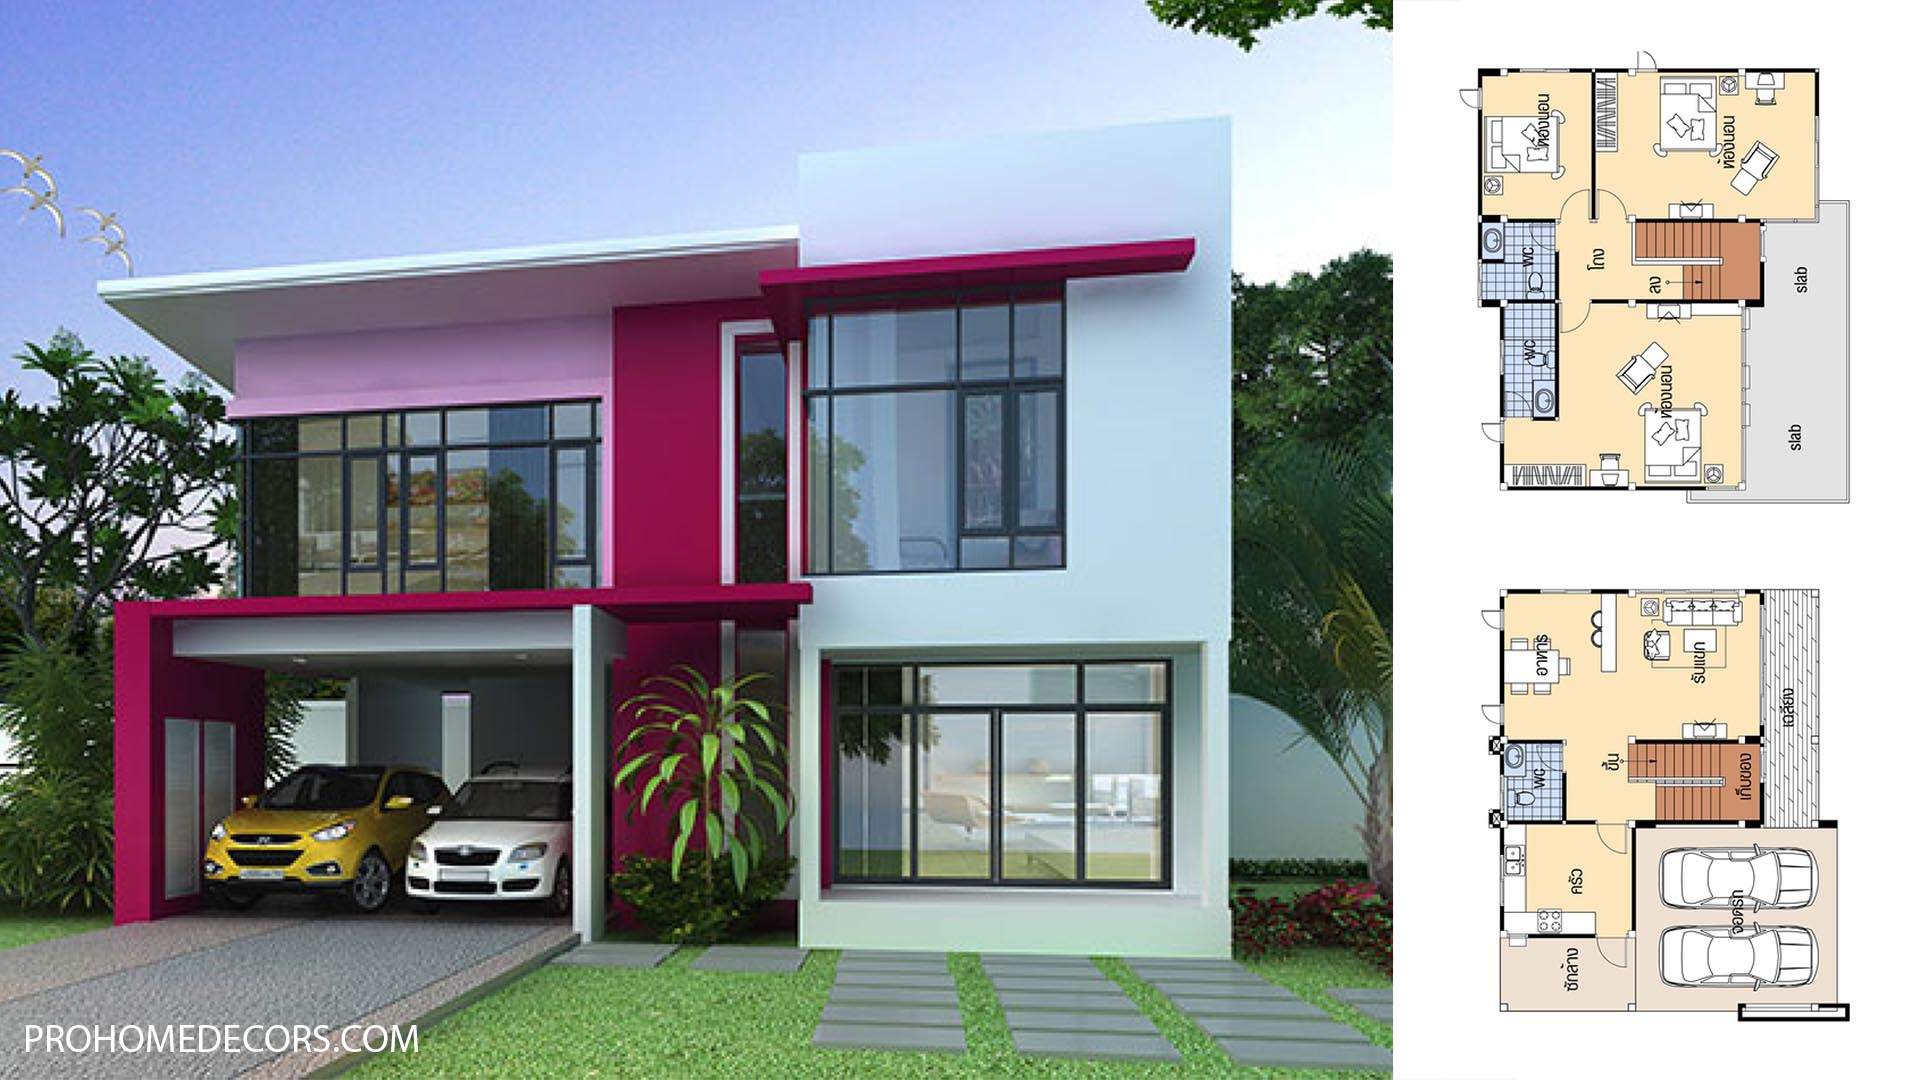 House Plans 11.5×8 with 3 Bedrooms